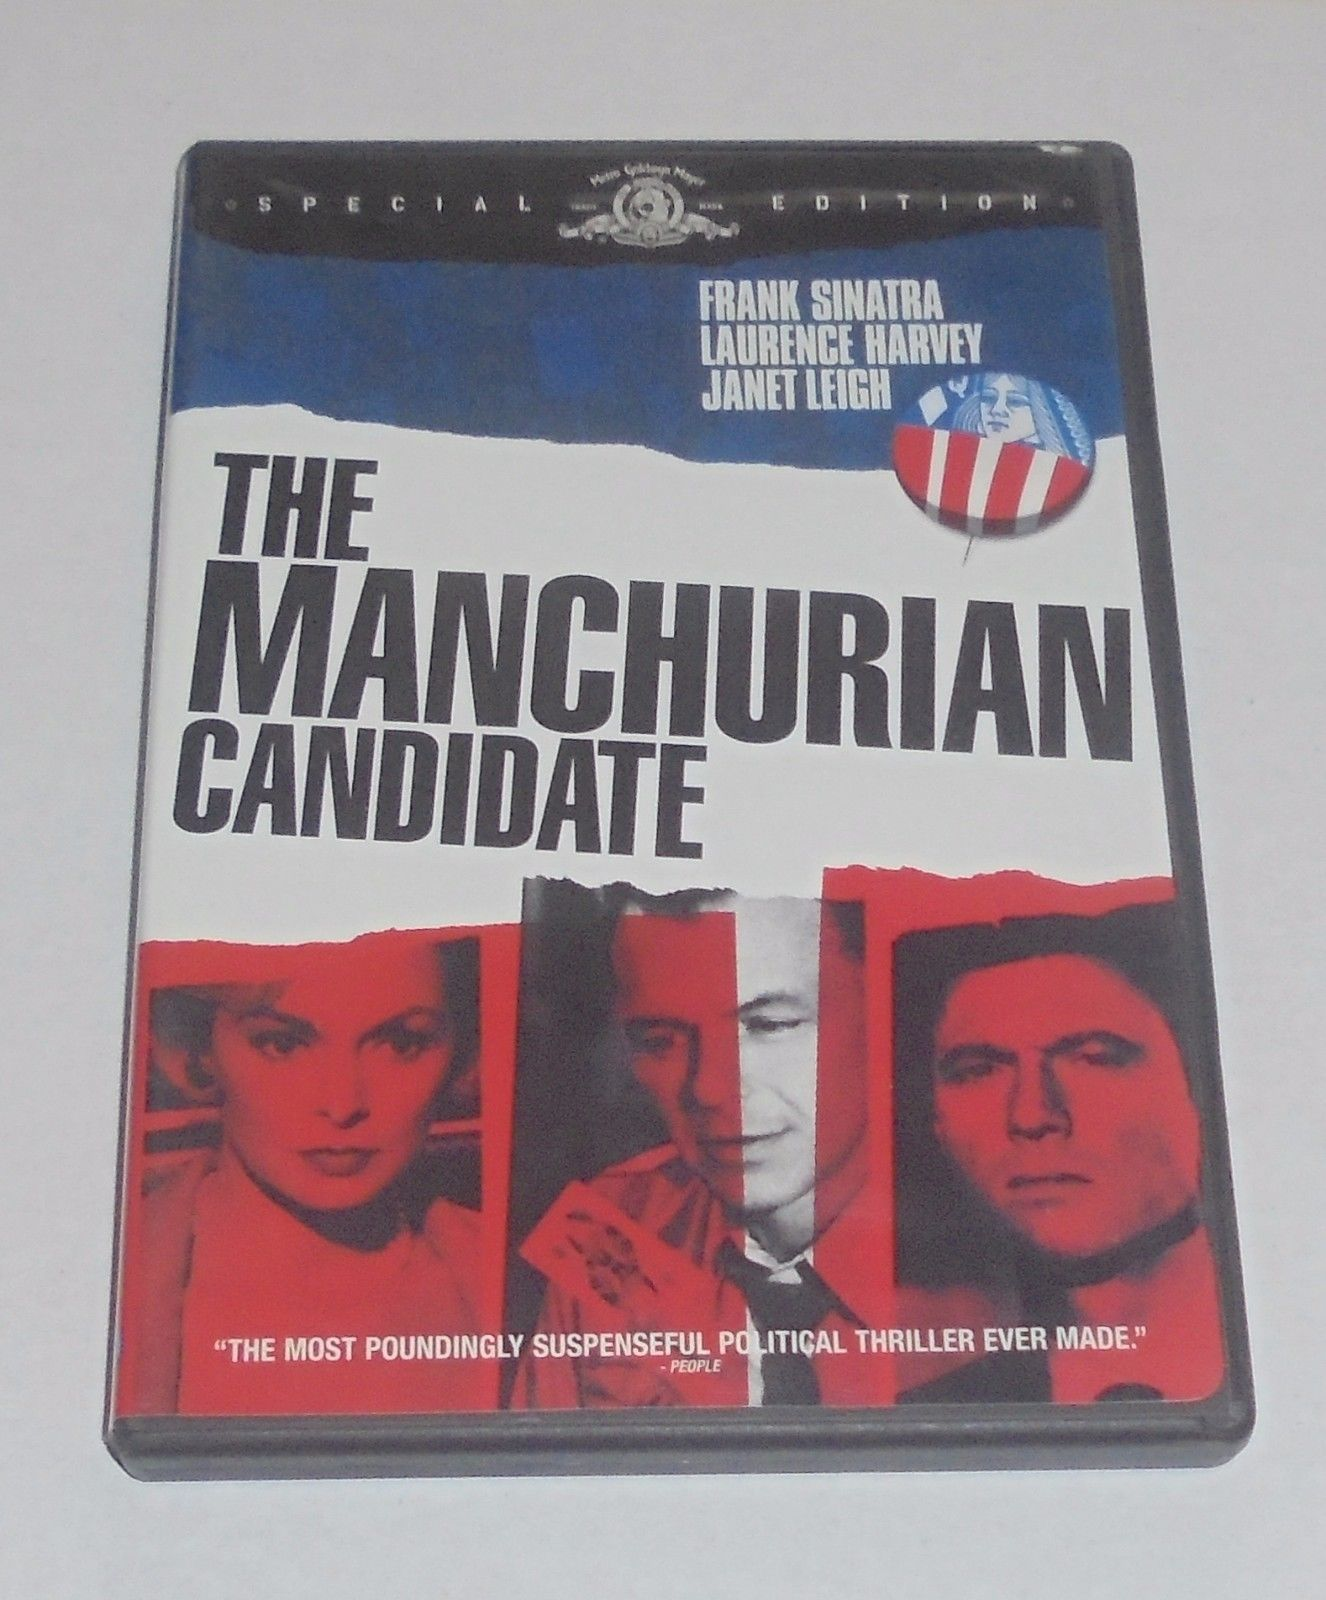 The Manchurian Candidate (DVD Special Edition) Frank Sinatra 1960s Classic Movie